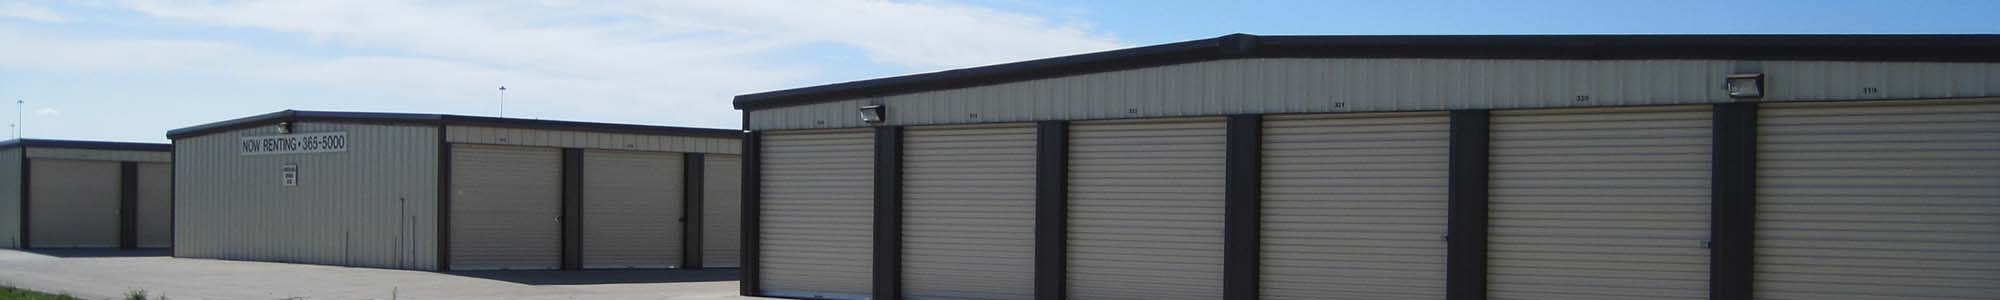 Self storage units in Fargo